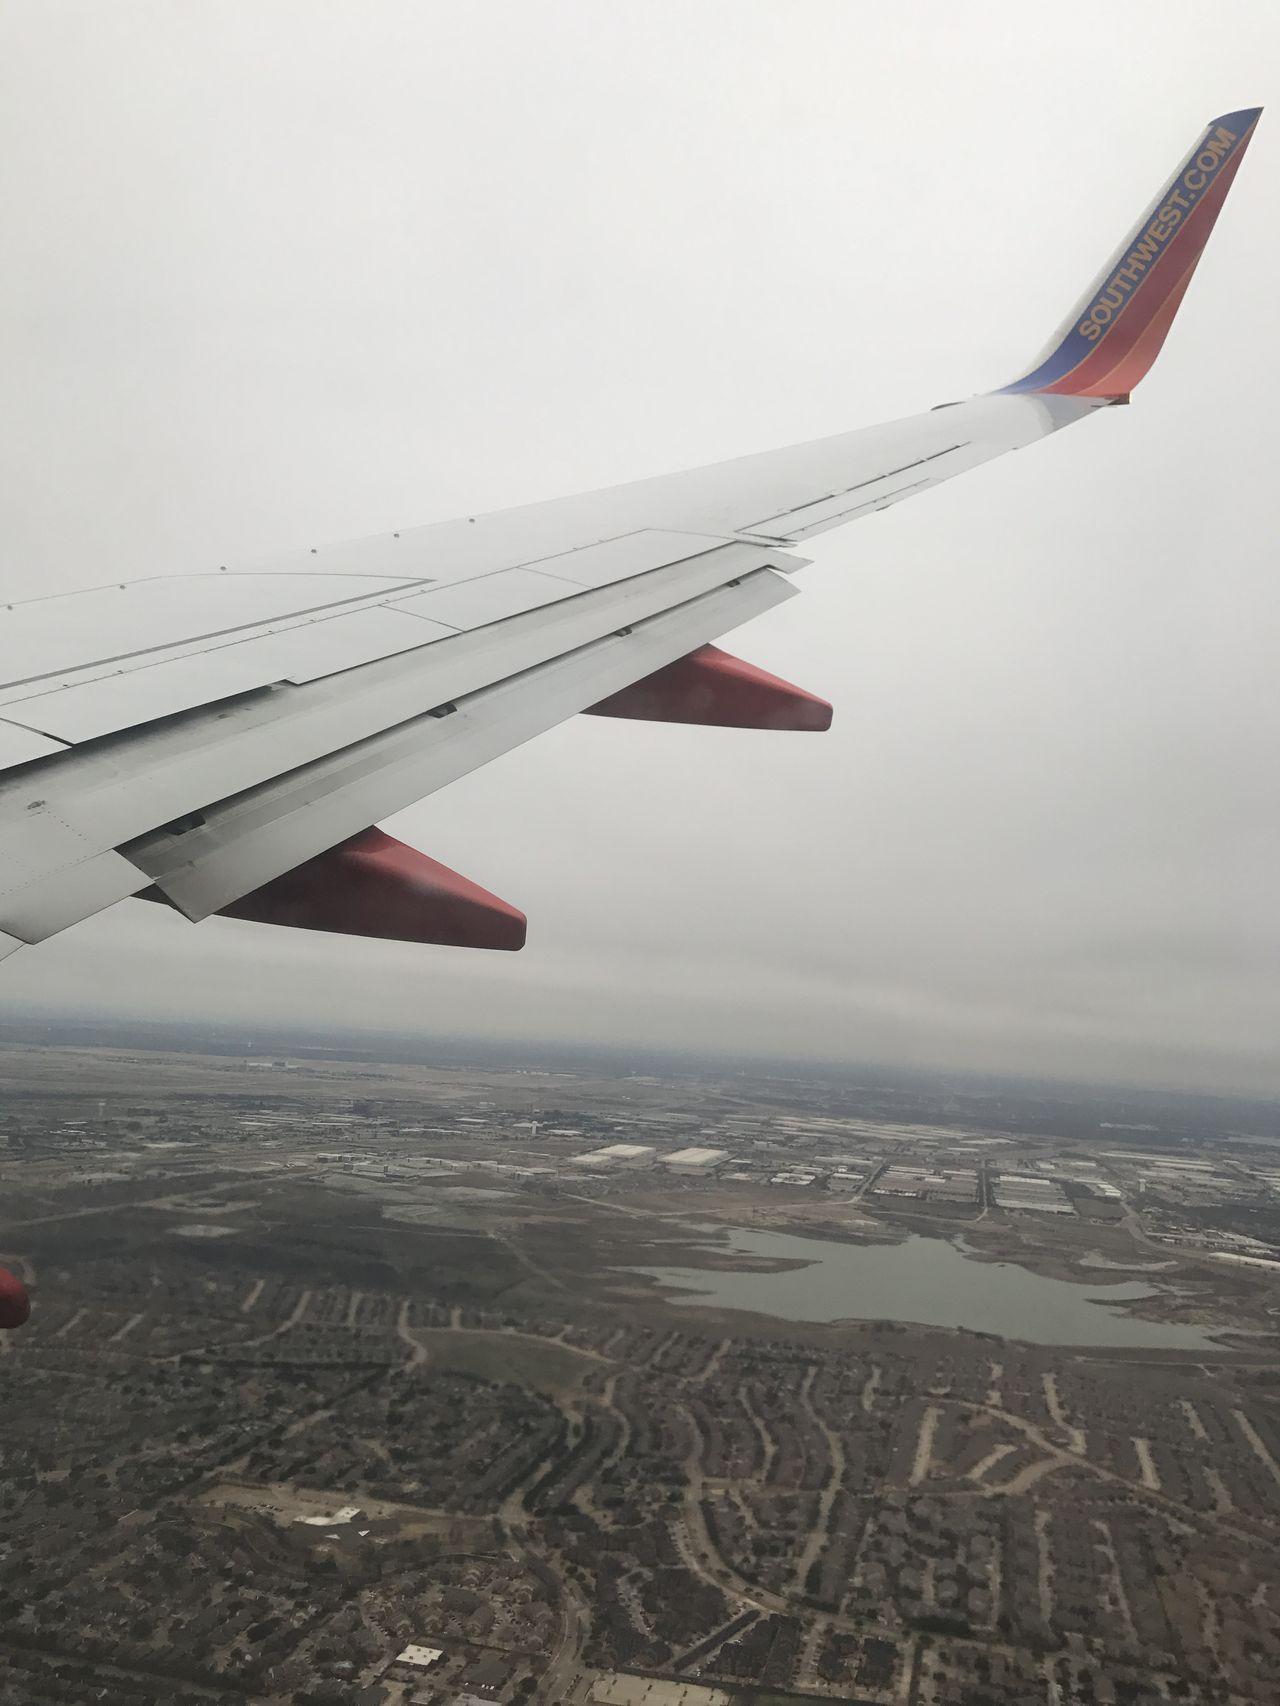 """a review of southwest airlines 6 days ago pilots also never declared an emergency before landing at cleveland """"the flight landed uneventfully in cleveland,"""" an airline spokeswoman said """"the aircraft has been taken out of service for maintenance review,"""" she added southwest airlines didn't provide details on why the window broke the federal."""